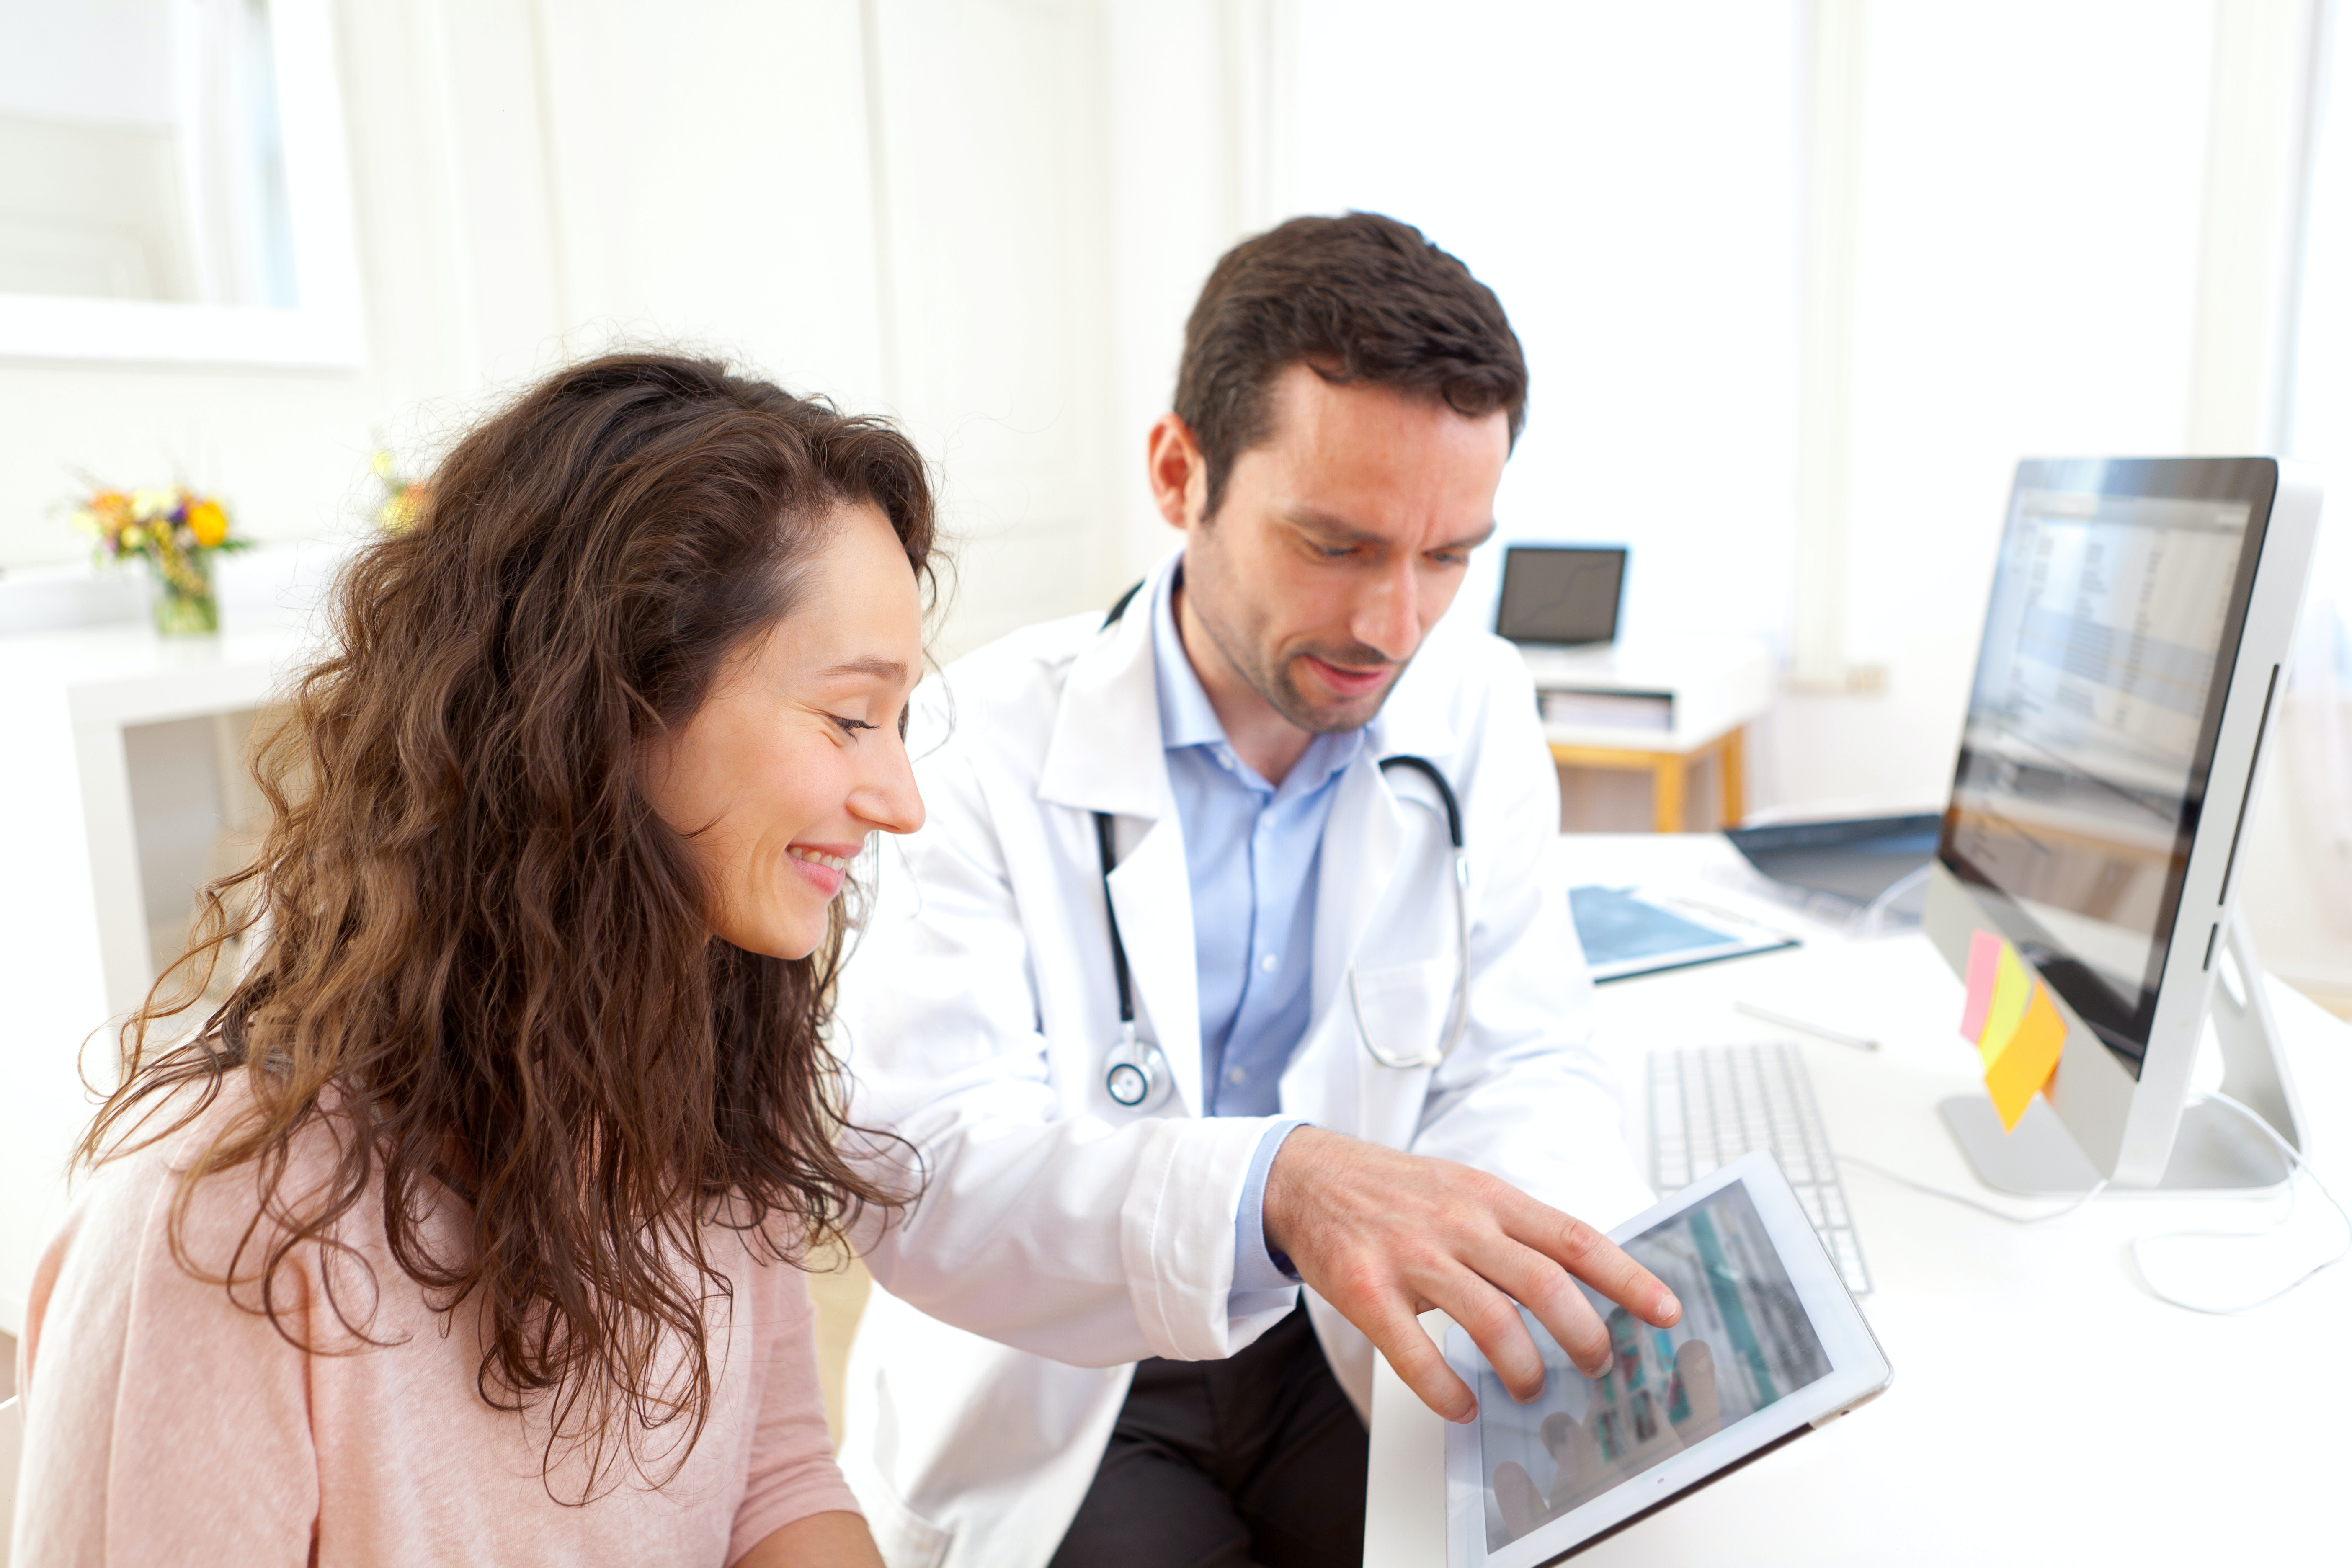 Doctor using computer and tablet to inform patient